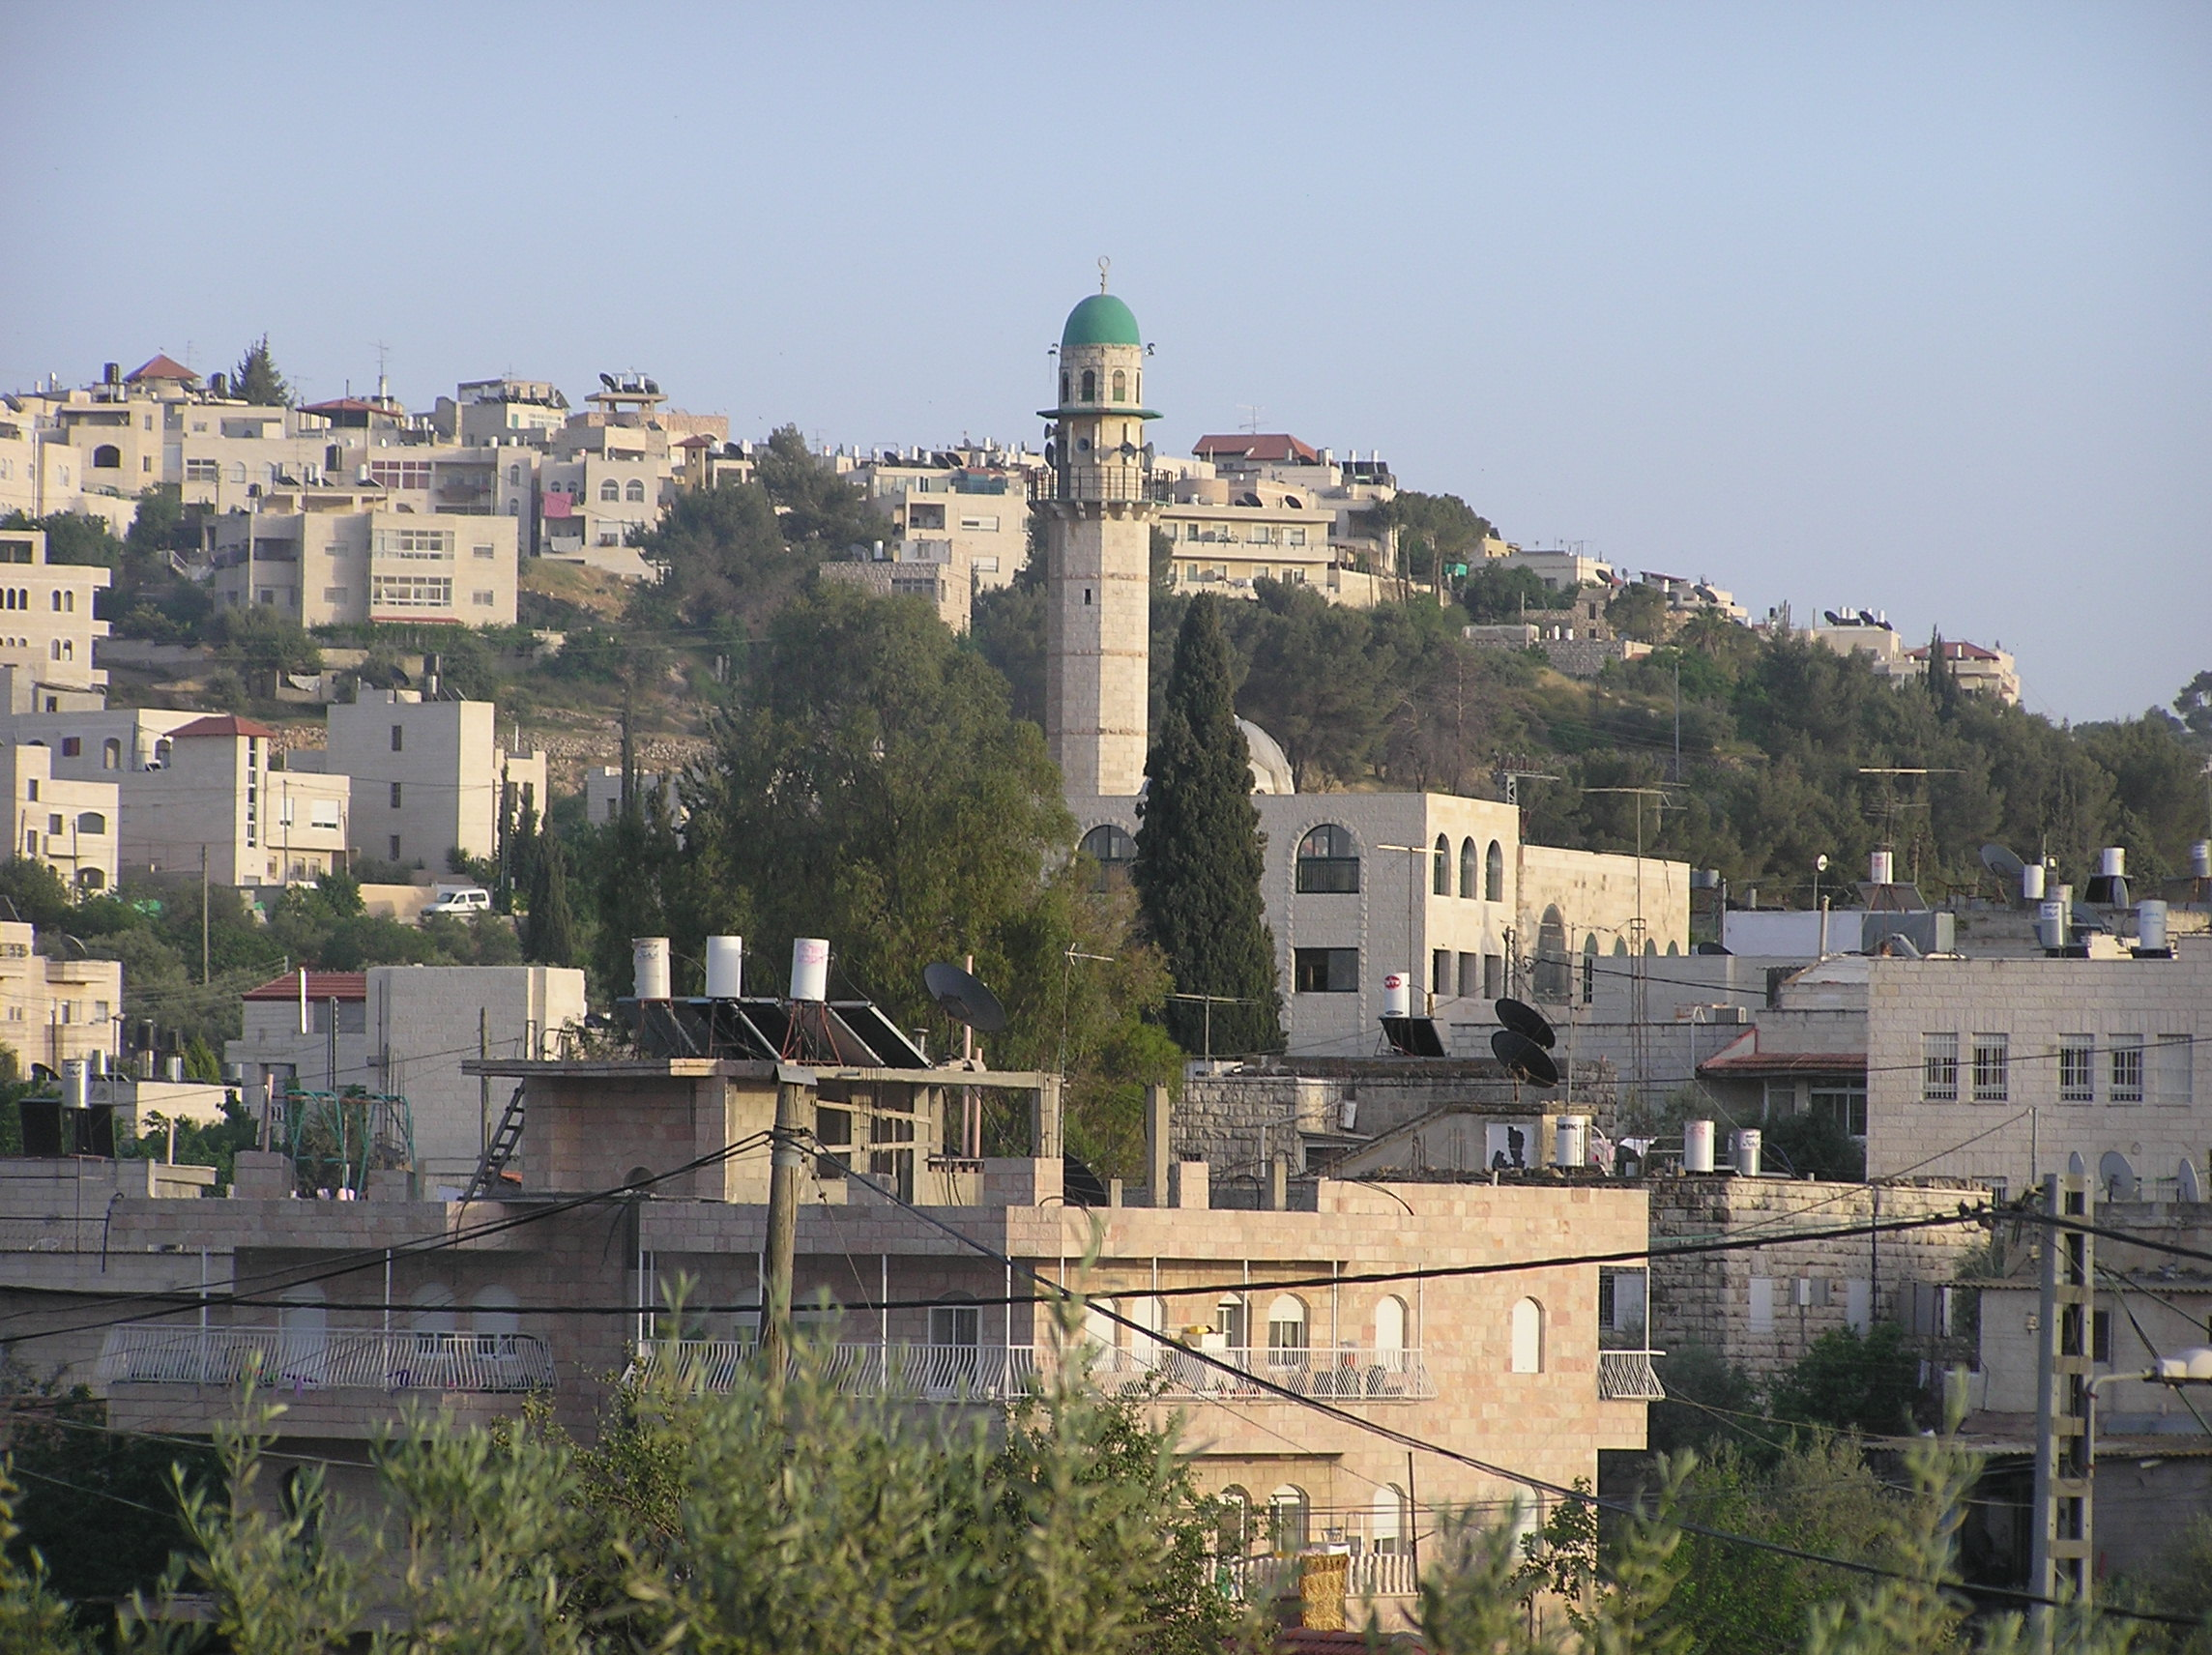 Bayt Safafa - بيت صفافا : A Close View Of Mosque In Center Of Village.